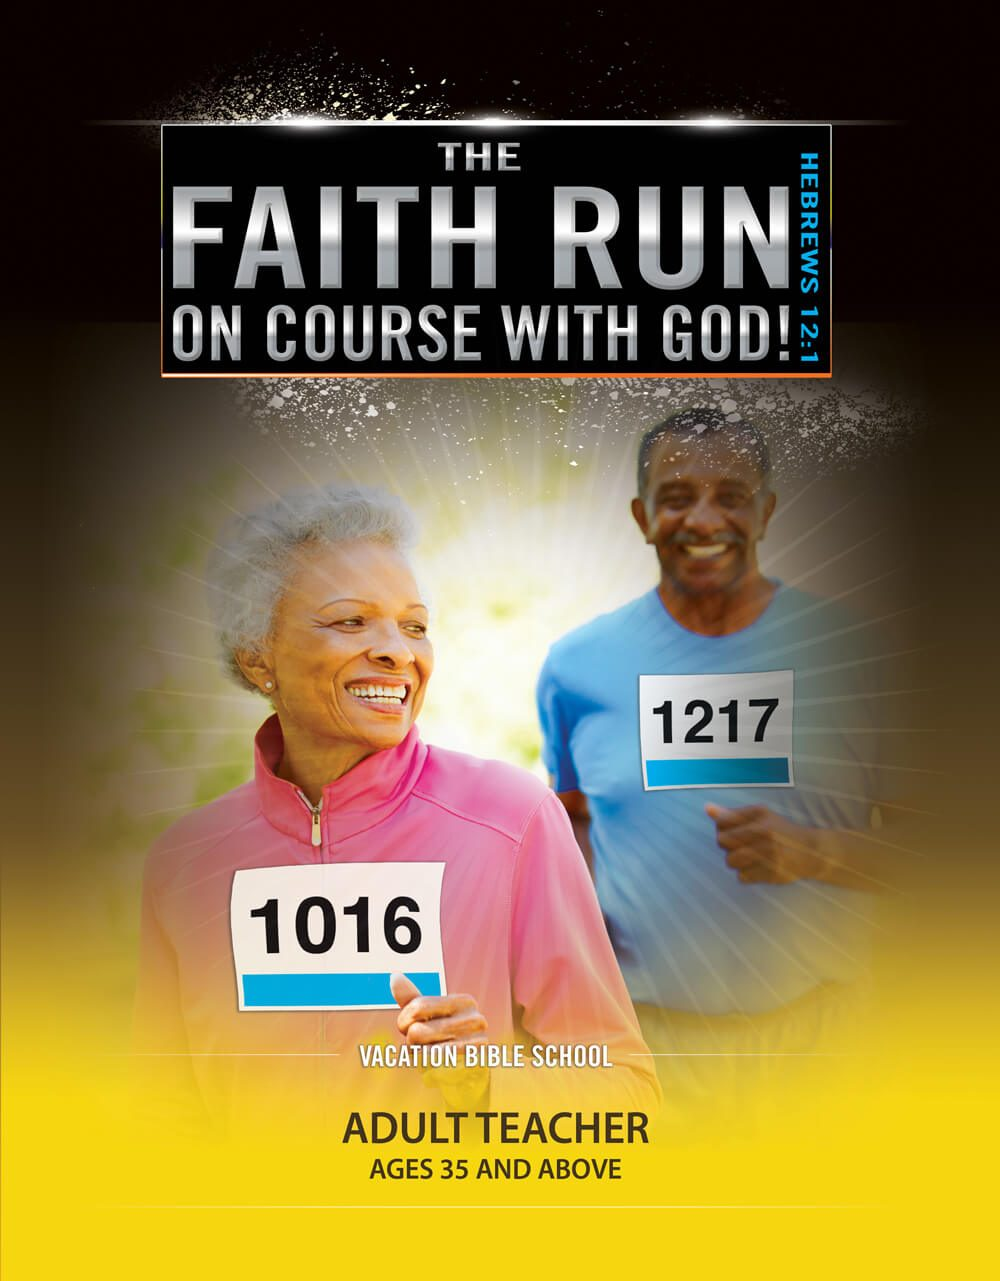 VBS The Faith Run Adult Teacher 2017